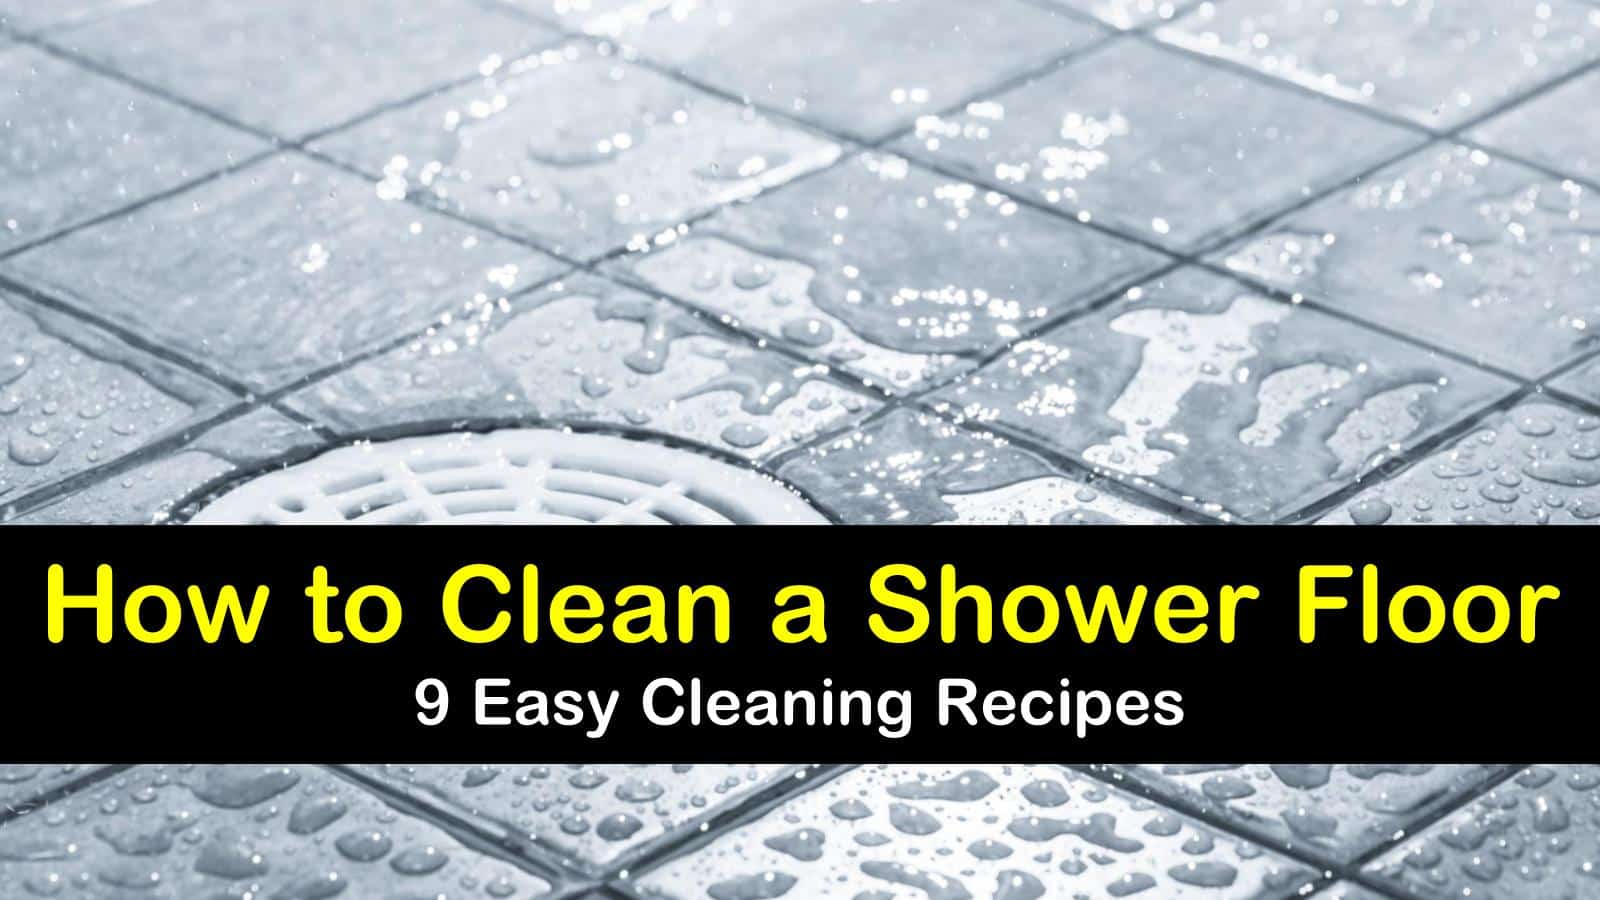 how to clean a shower floor titleimg1